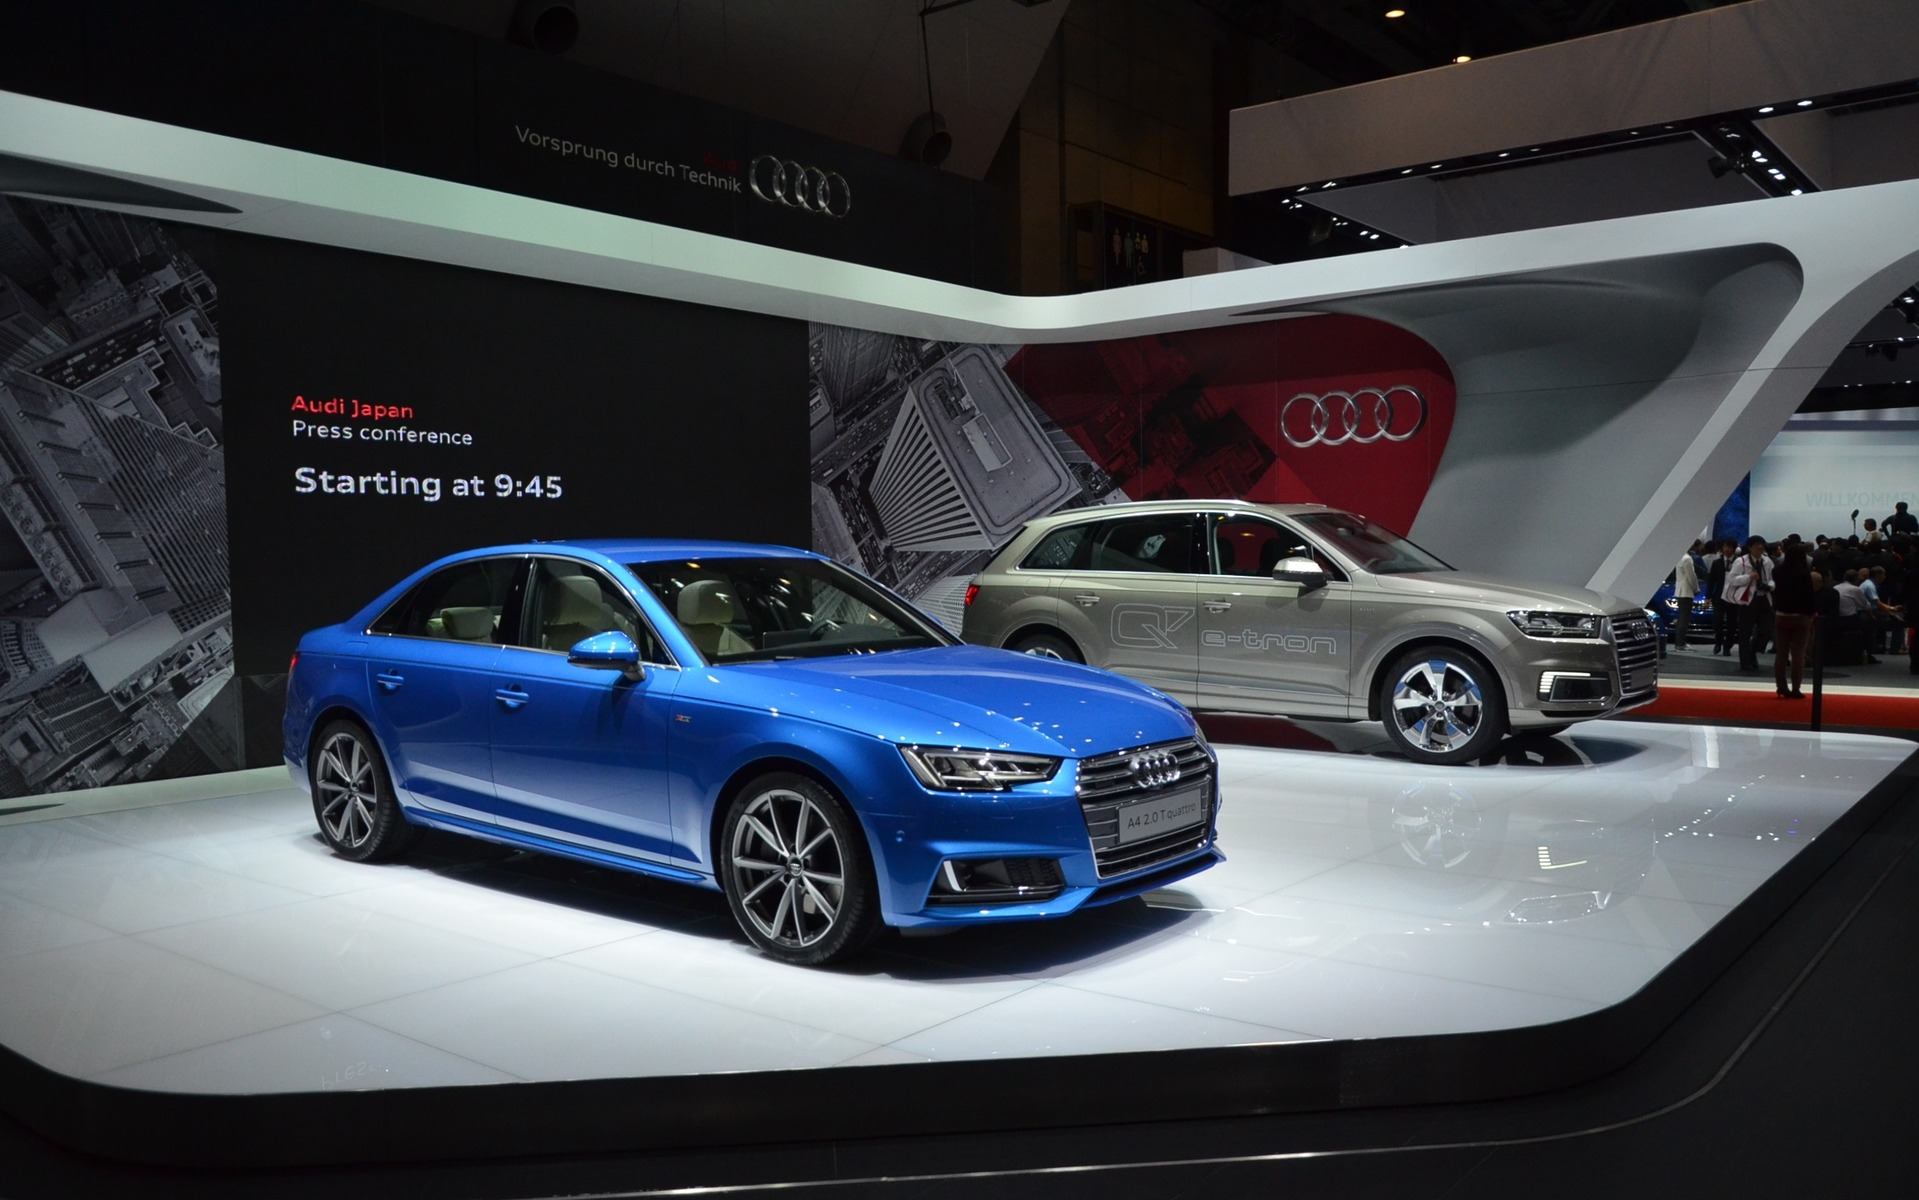 cars audi loader wallpapers photo hd download drivespark sedan